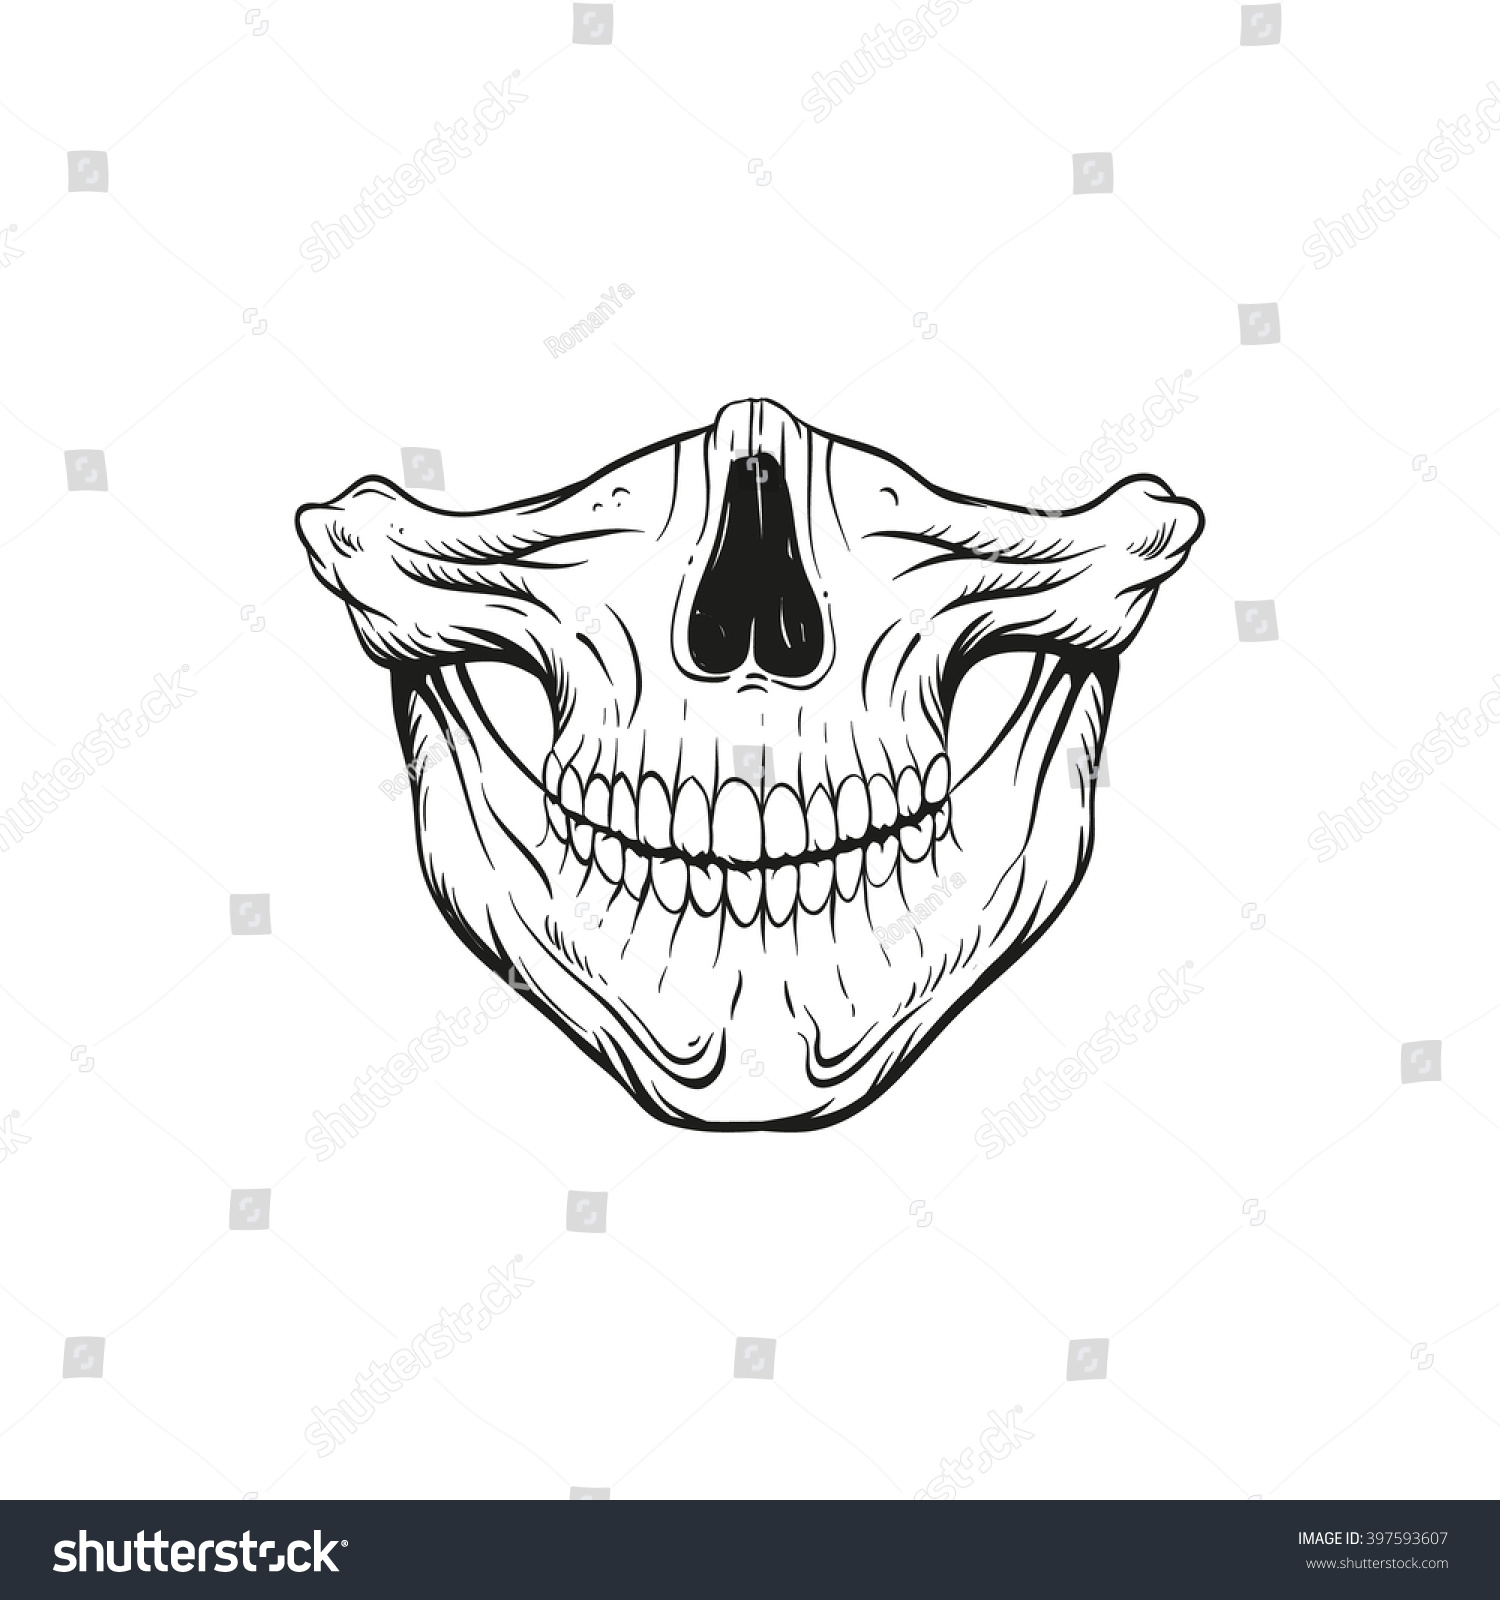 skull jaw sketch tattoo design hand stock vector 397593607 shutterstock. Black Bedroom Furniture Sets. Home Design Ideas